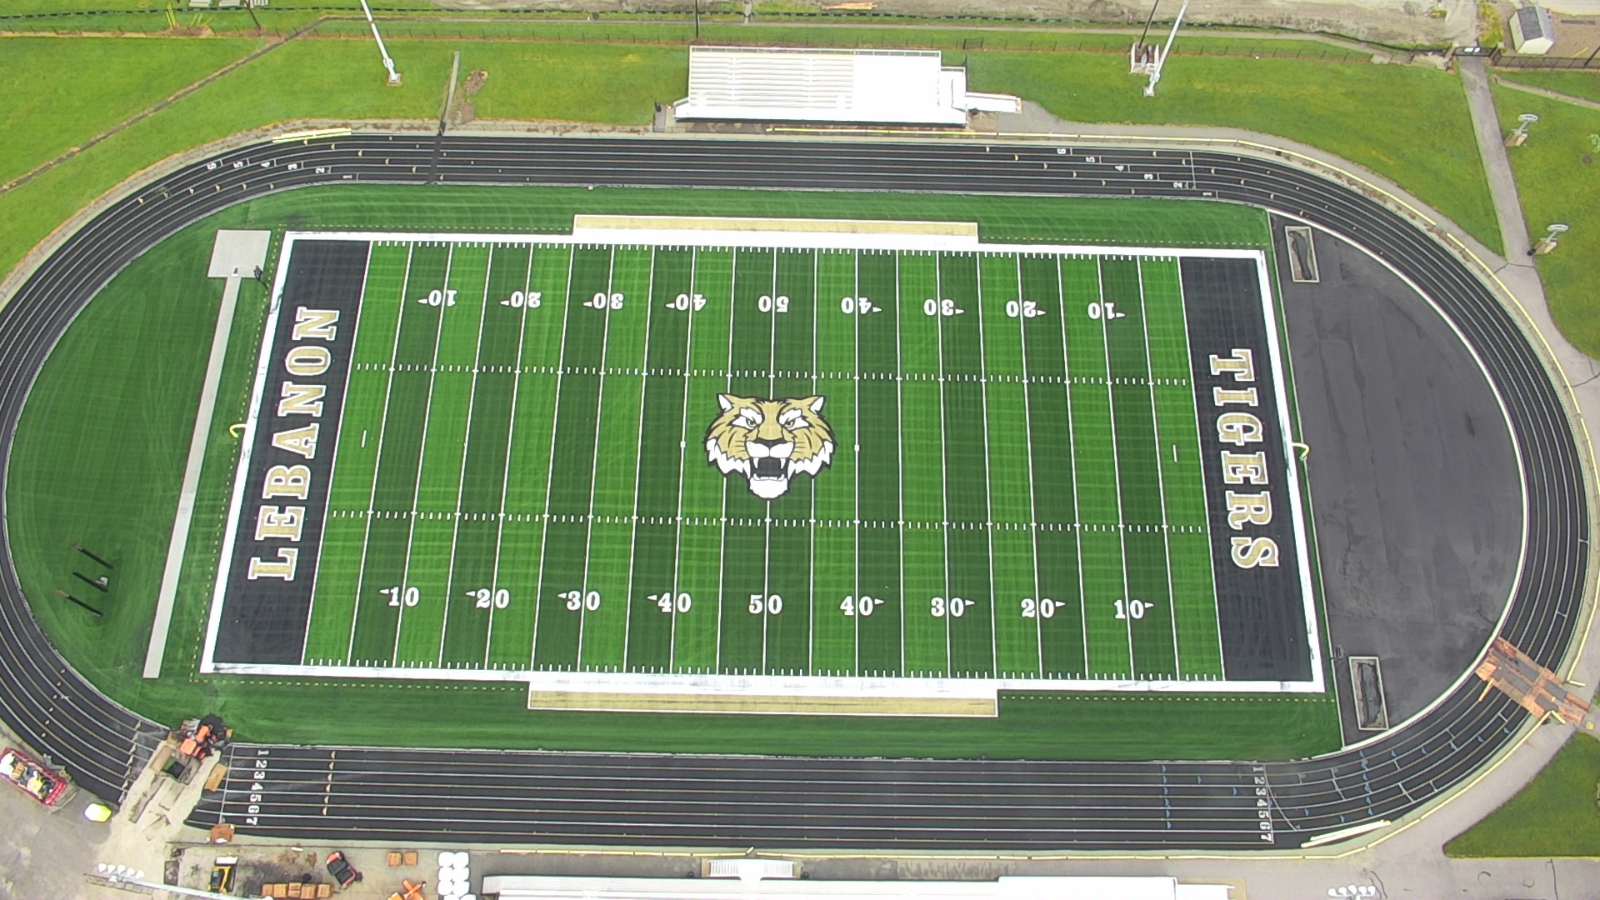 Purchase limited tickets to LHS vs. Brebeuf Football Scrimmage this Saturday 10 a.m.